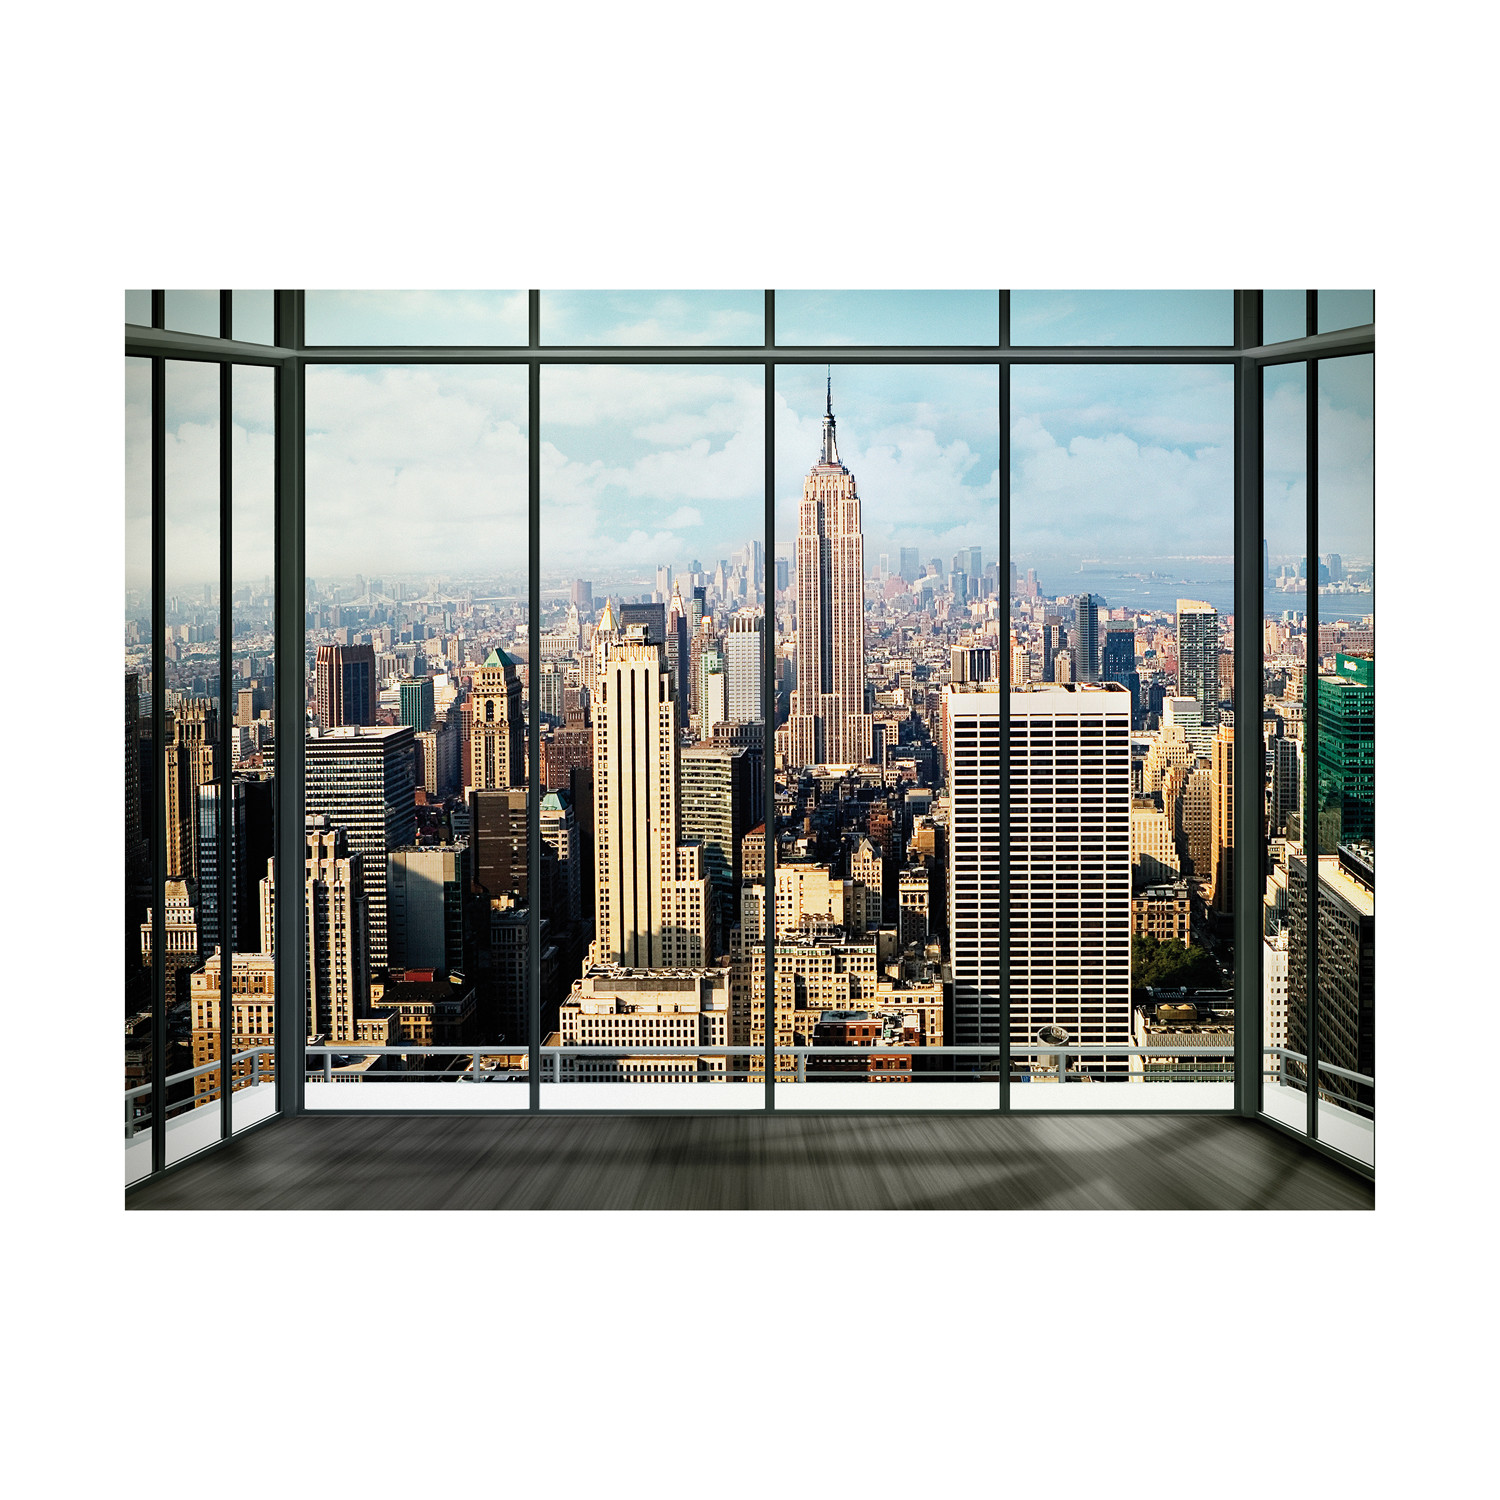 New york skyline window 1 wall murals touch of modern for Acheter poster mural new york